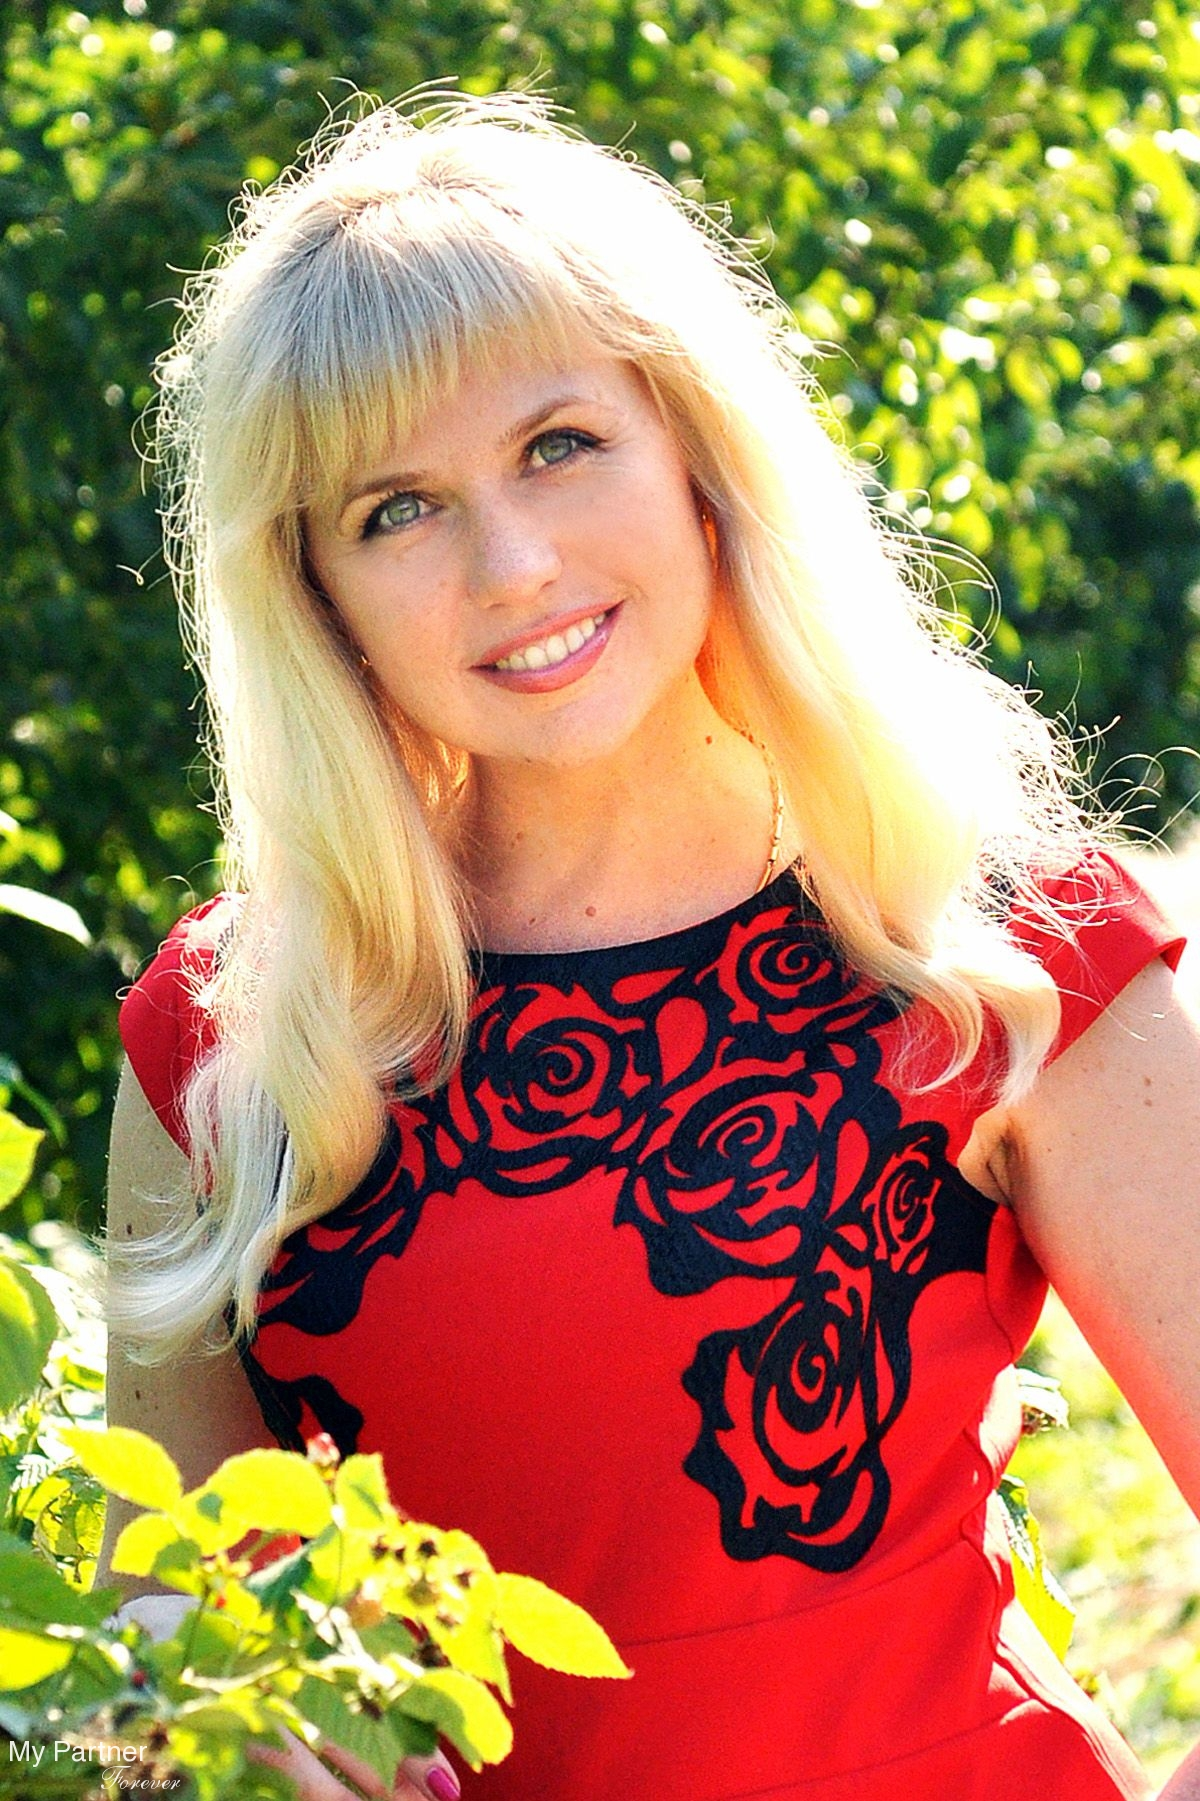 Charming Woman from Ukraine - Tatiyana from Kharkov, Ukraine